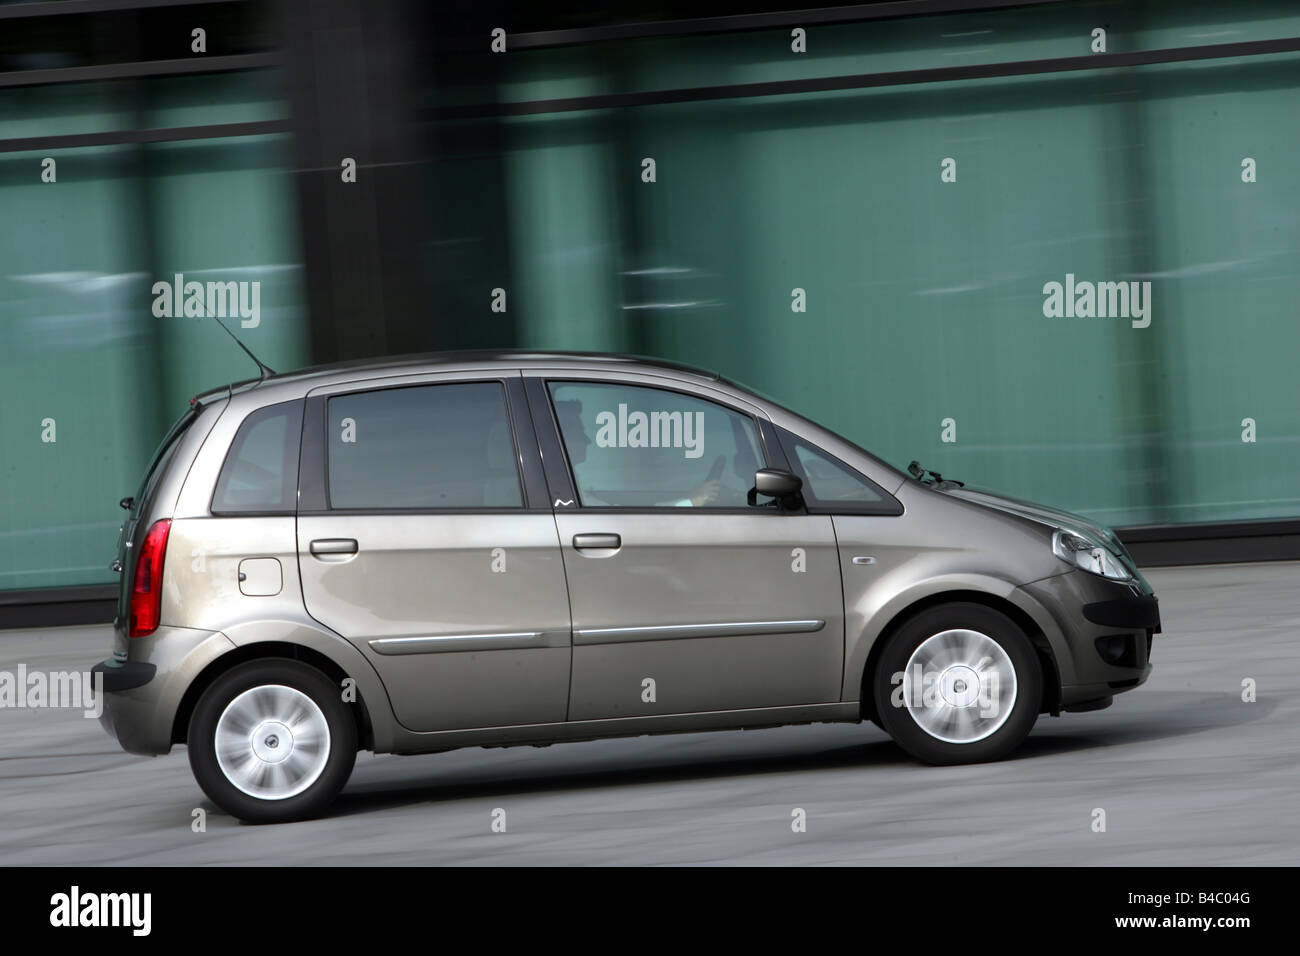 https://c8.alamy.com/comp/B4C04G/car-lancia-musa-multijet-10-jtd-van-model-year-2004-driving-side-view-B4C04G.jpg